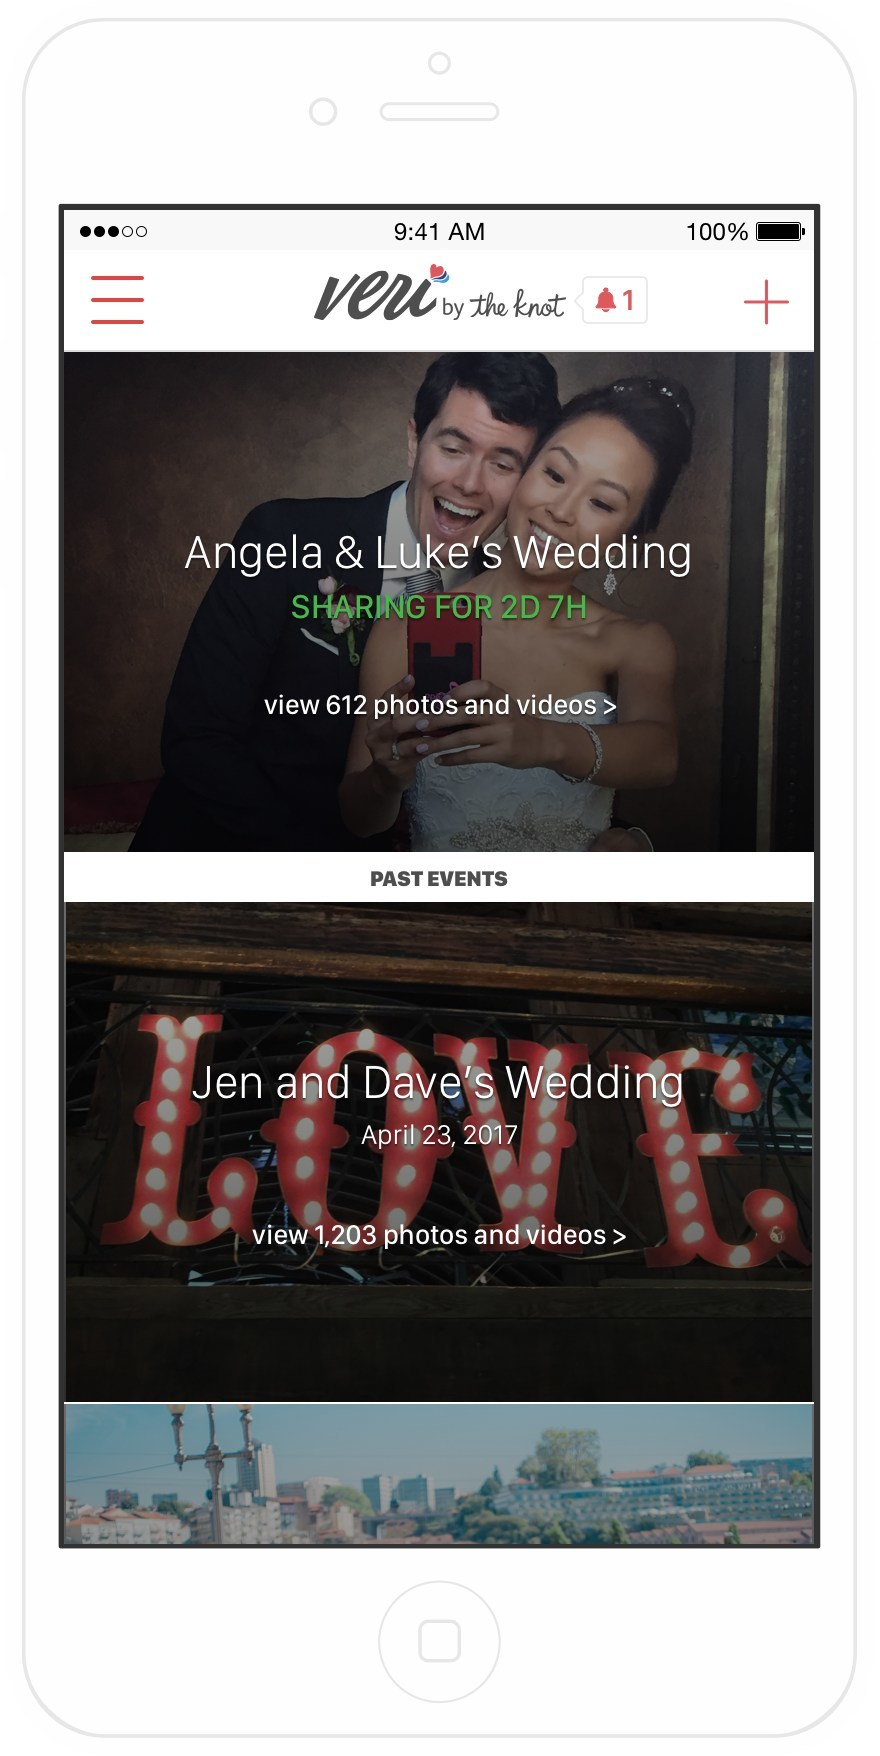 Veri, the first and only photo-sharing app focused on weddings and events that automatically shares photos from the user's built-in camera on their mobile device.